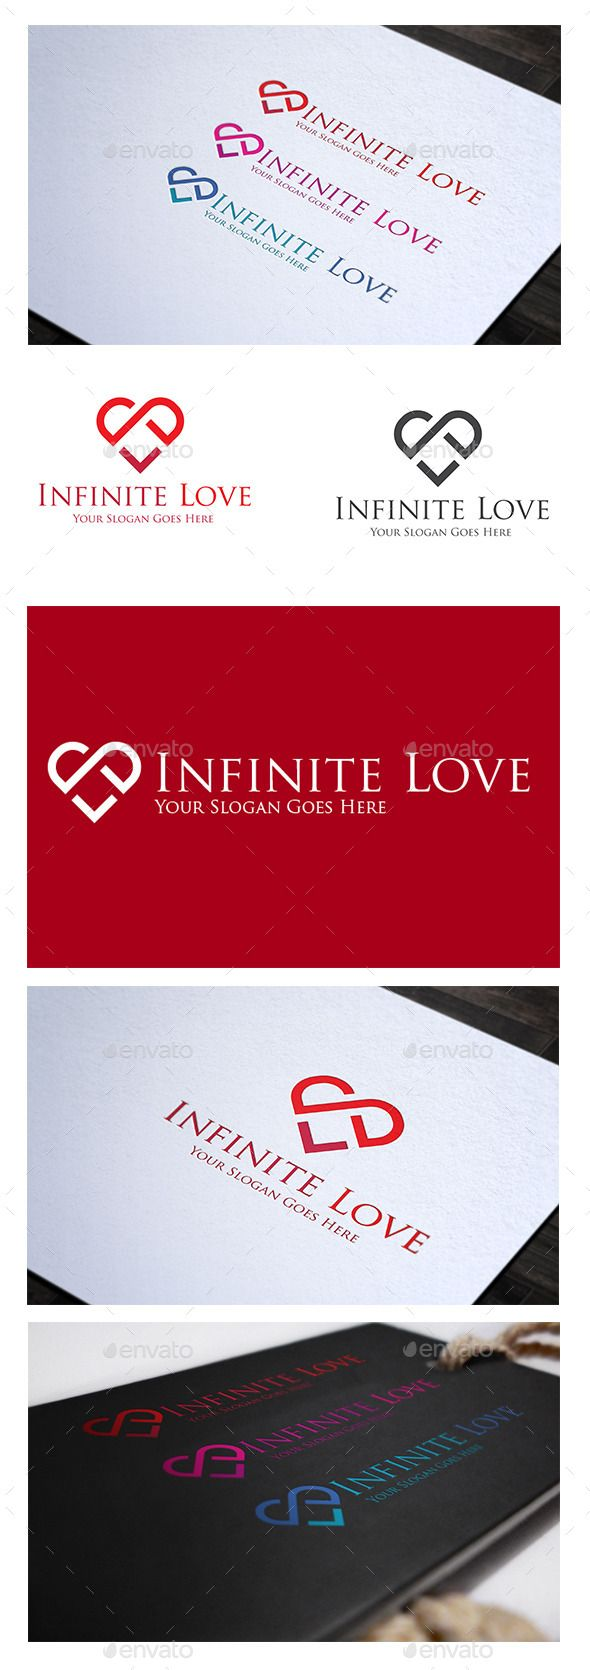 Infinite Love - Logo Design Template Vector #logotype Download it here: http://graphicriver.net/item/infinite-love-logo-/8879289?s_rank=1091?ref=nexion